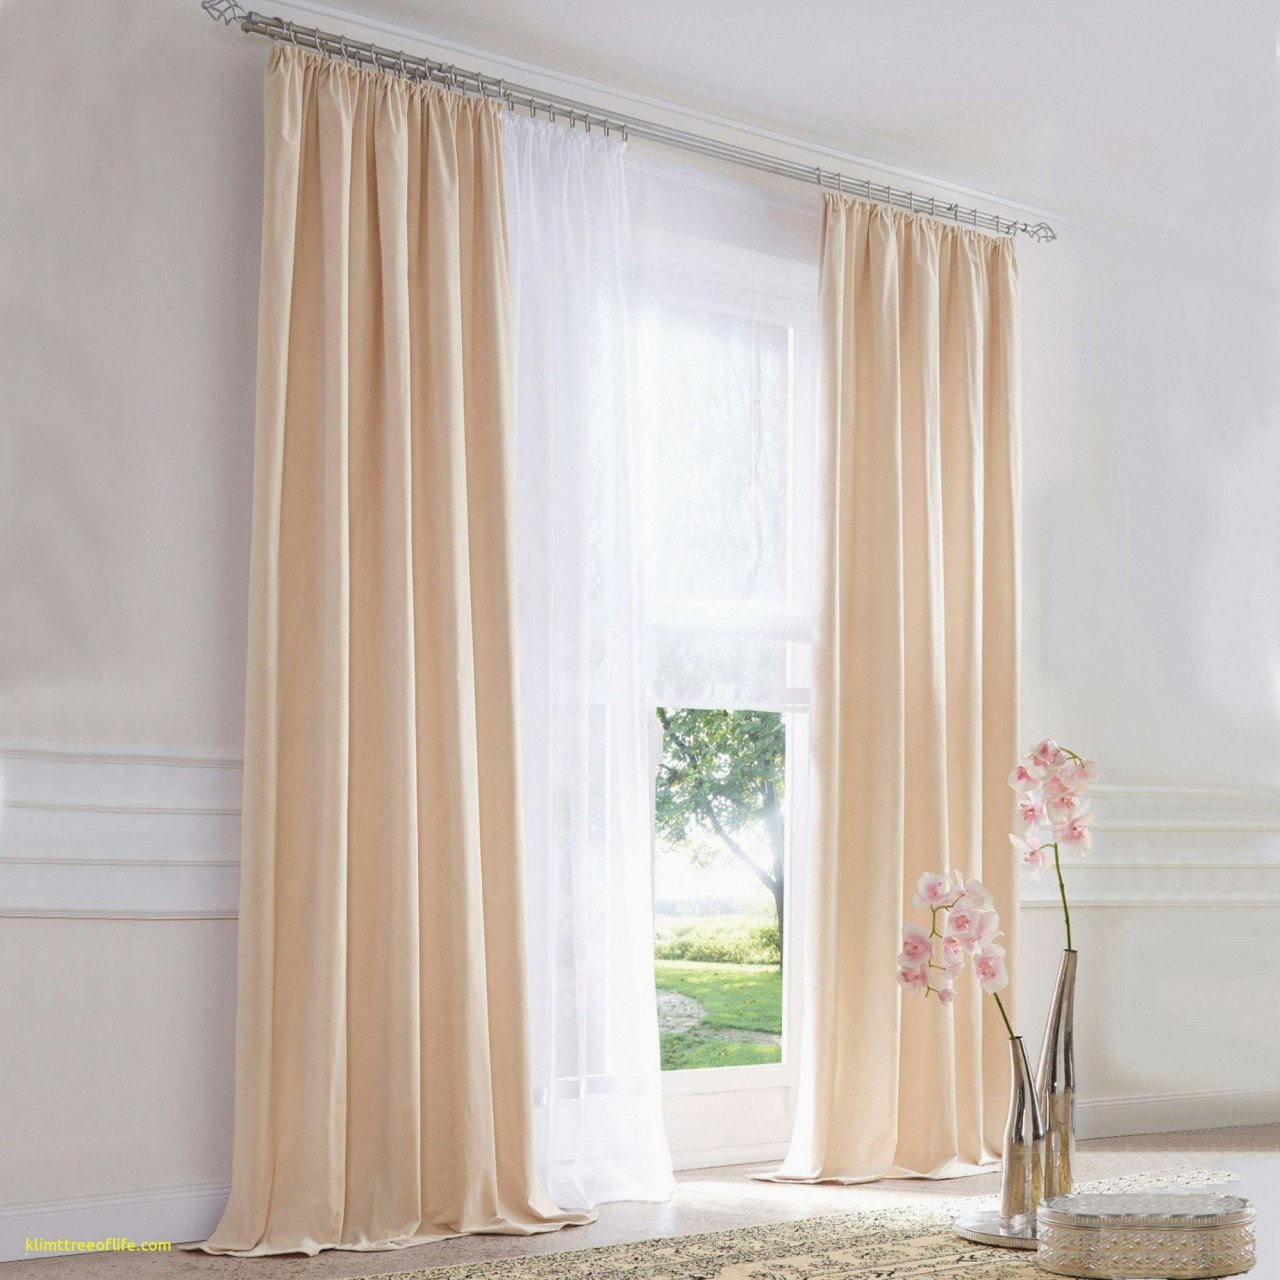 Bedroom Curtains and Drapes Fresh Coral Bedroom Curtains — Procura Home Blog